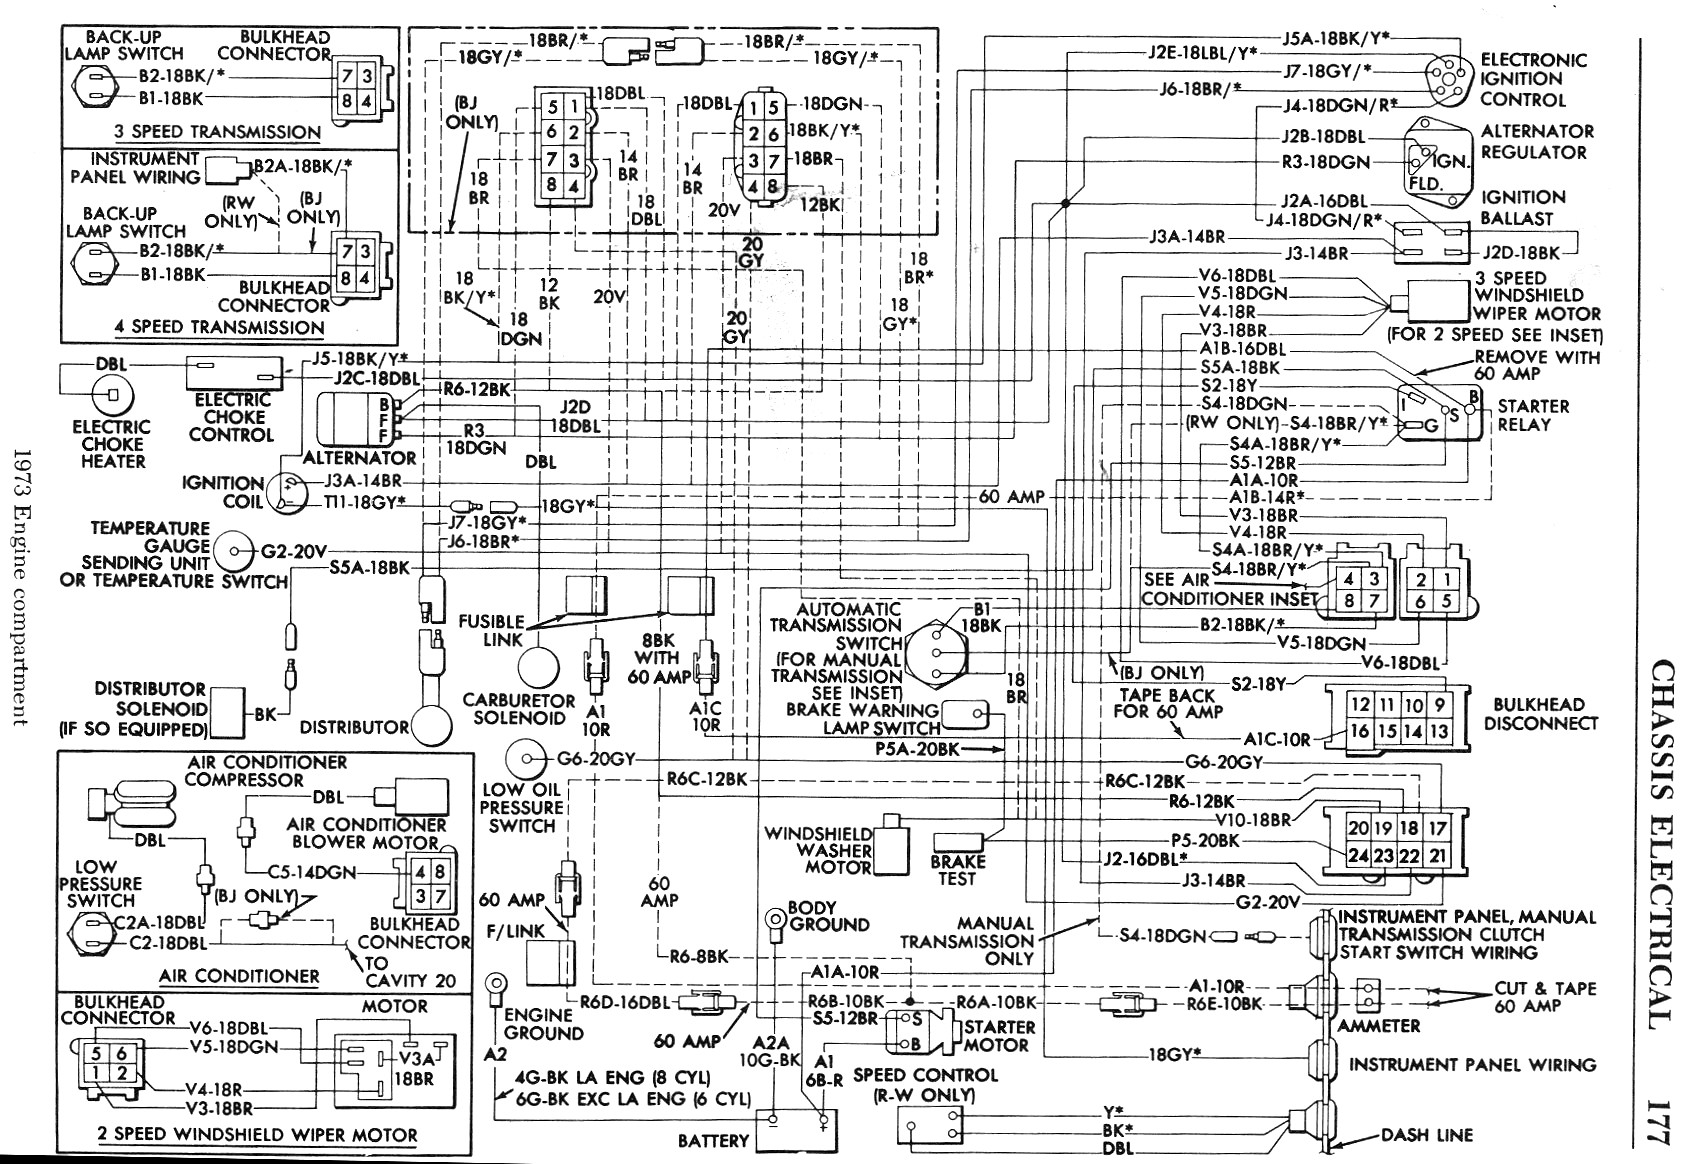 5098823 73B BodyEngineCompartmentWiringDiagram mopar wiring diagram powerflex 755 wiring diagrams \u2022 free wiring 2006 dodge charger engine wiring harness at soozxer.org